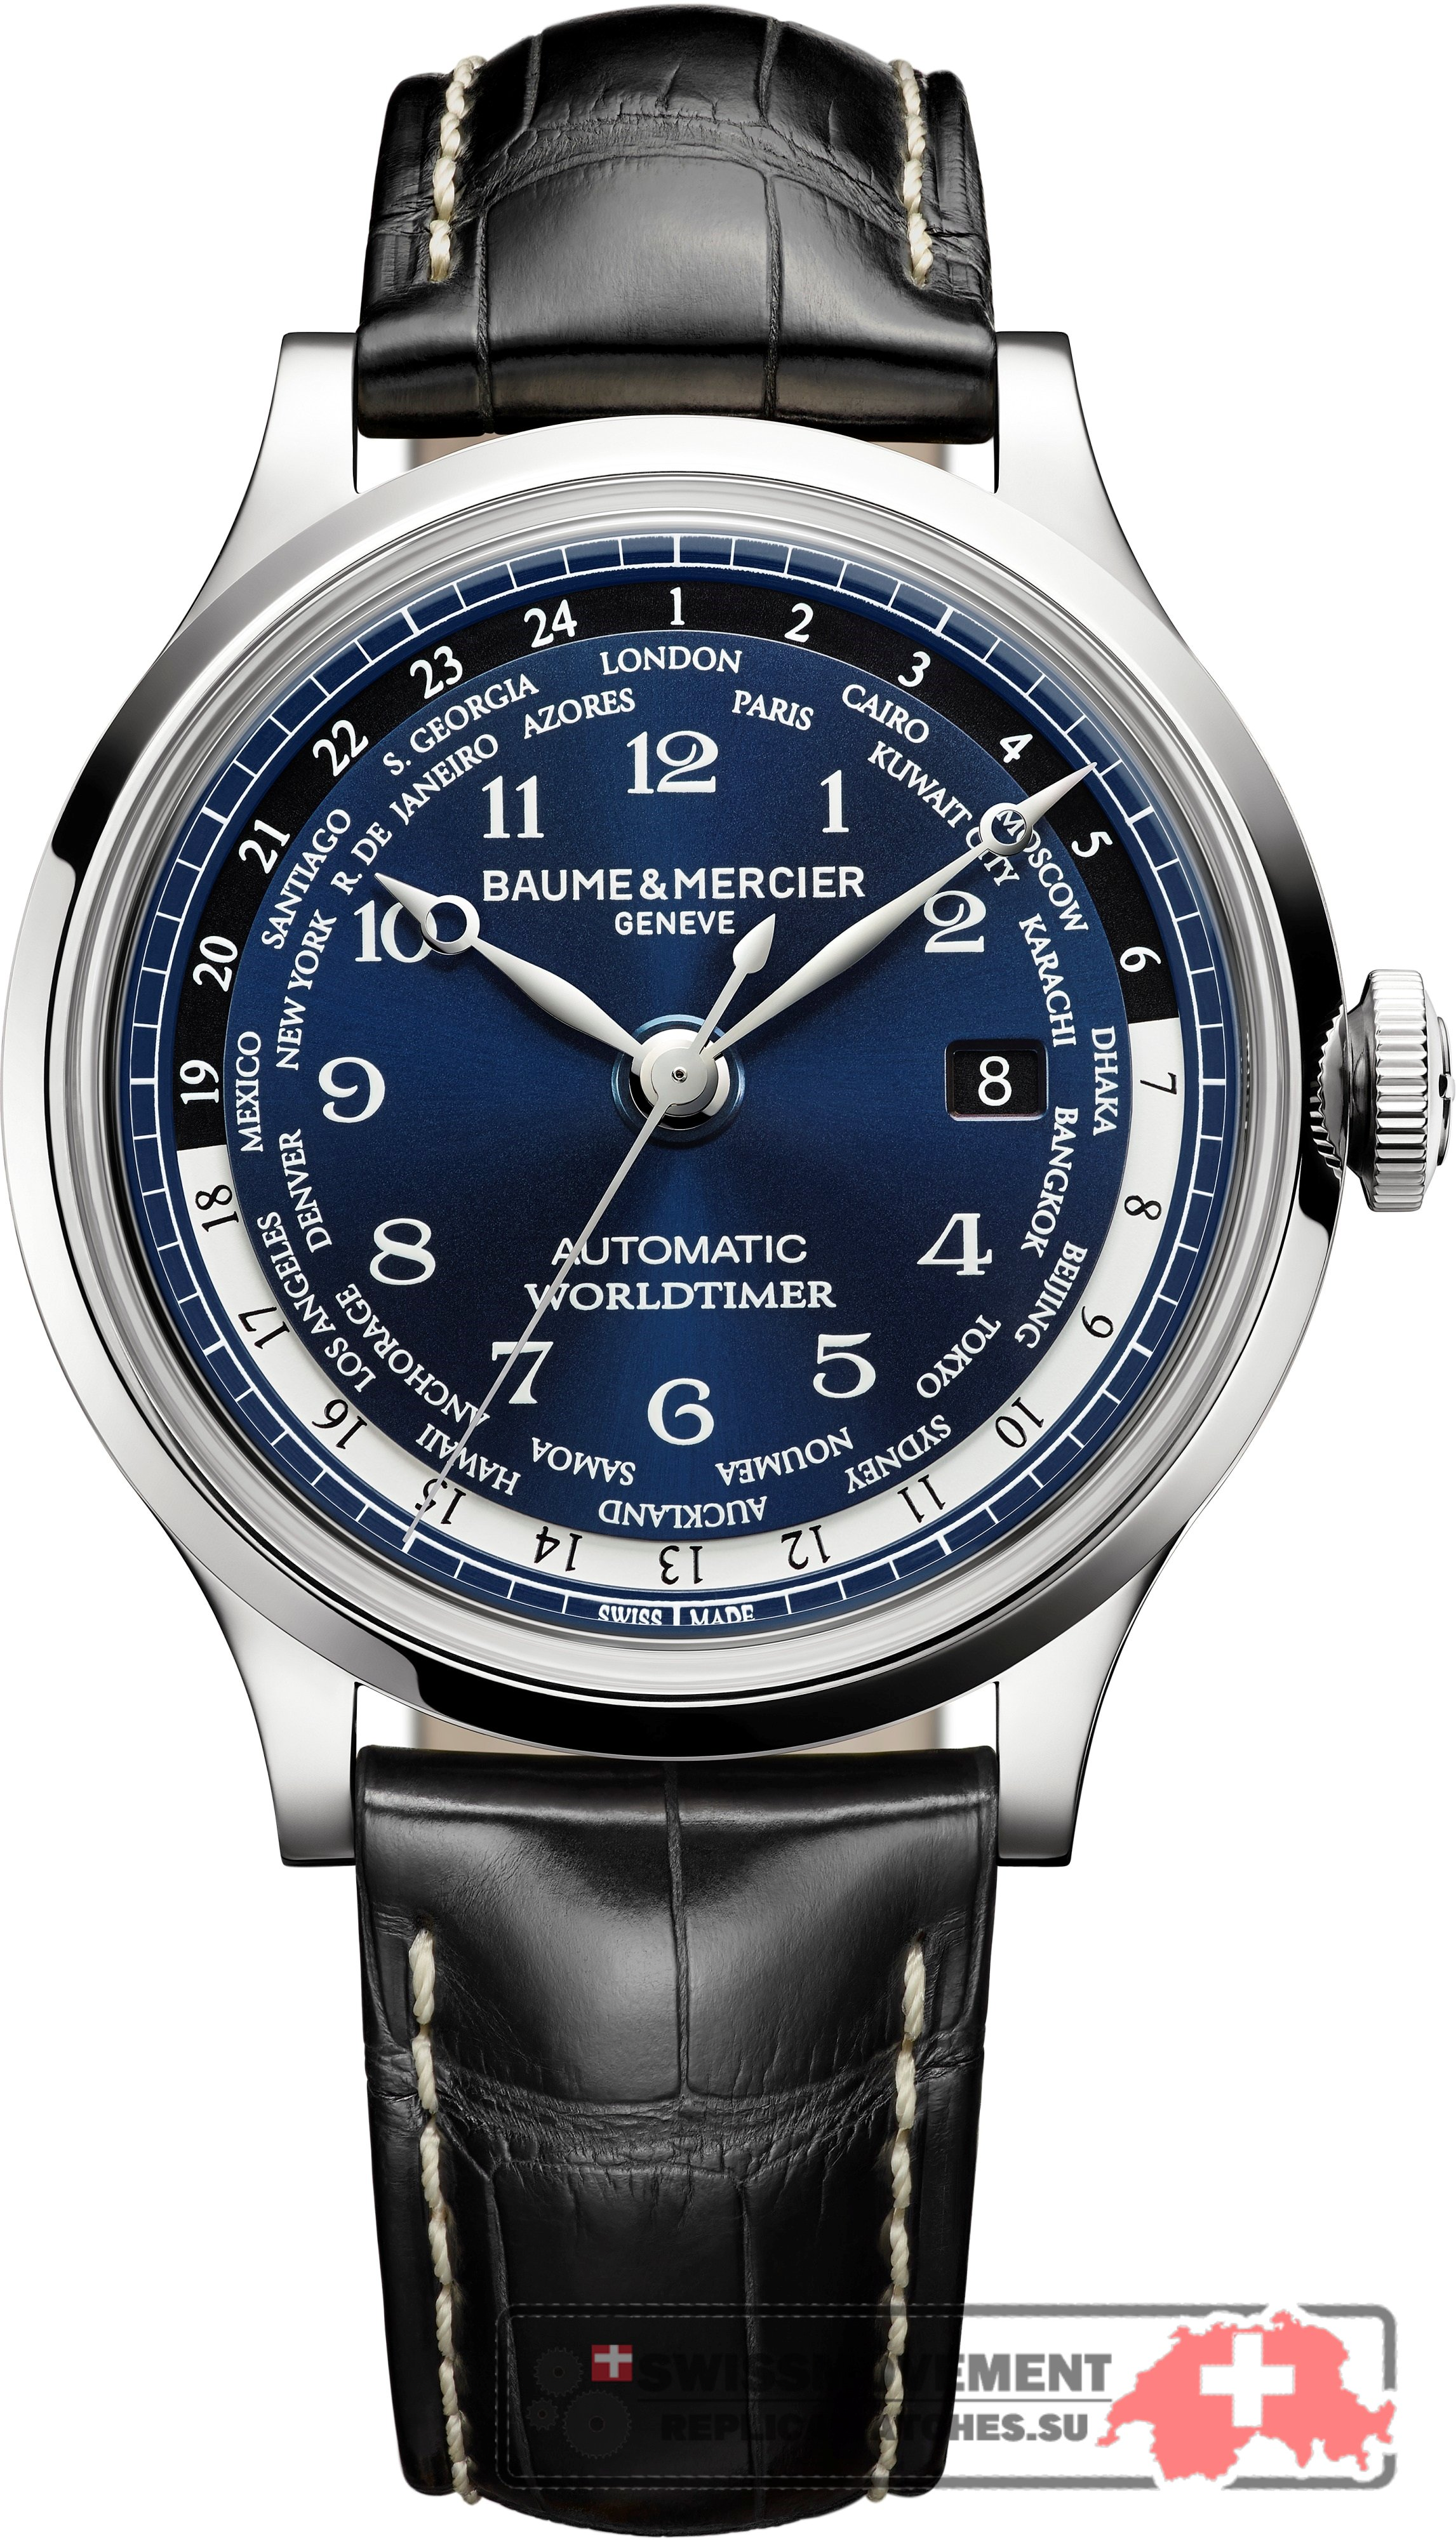 Baume & Mercier Capeland Worldtimer Limited Edition (10135)